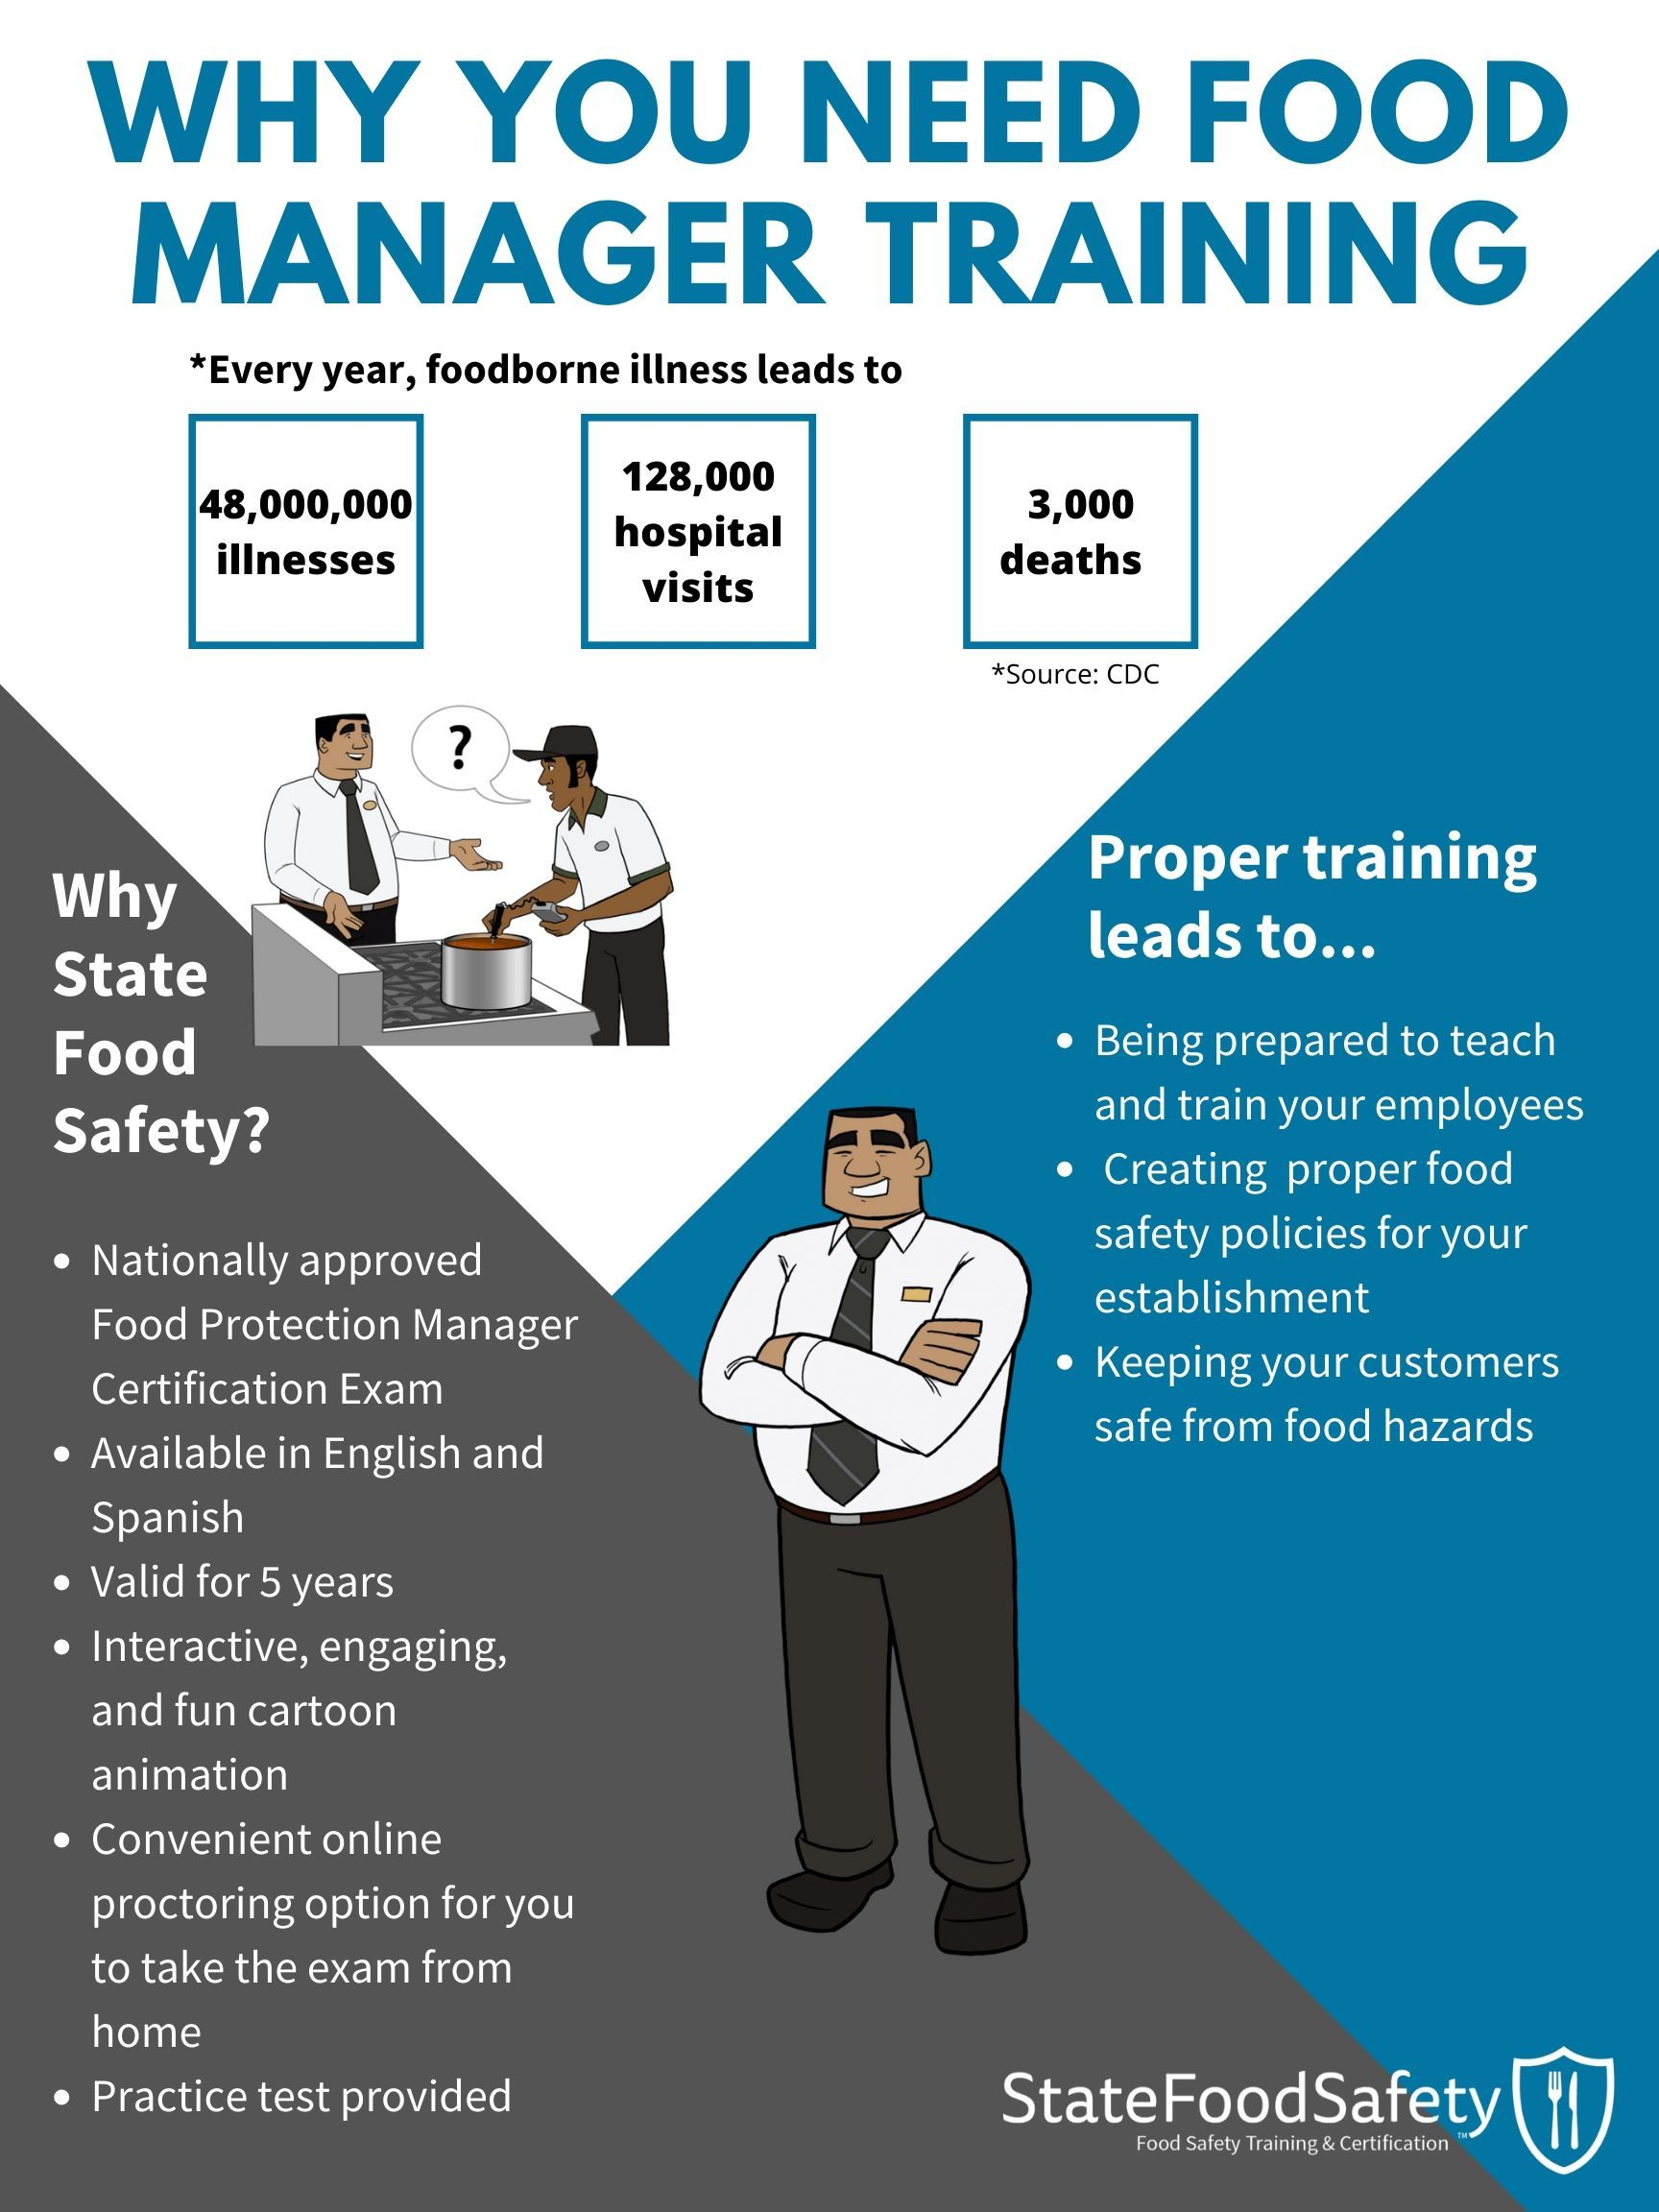 Do you own or operate a food establishment? Here's why you